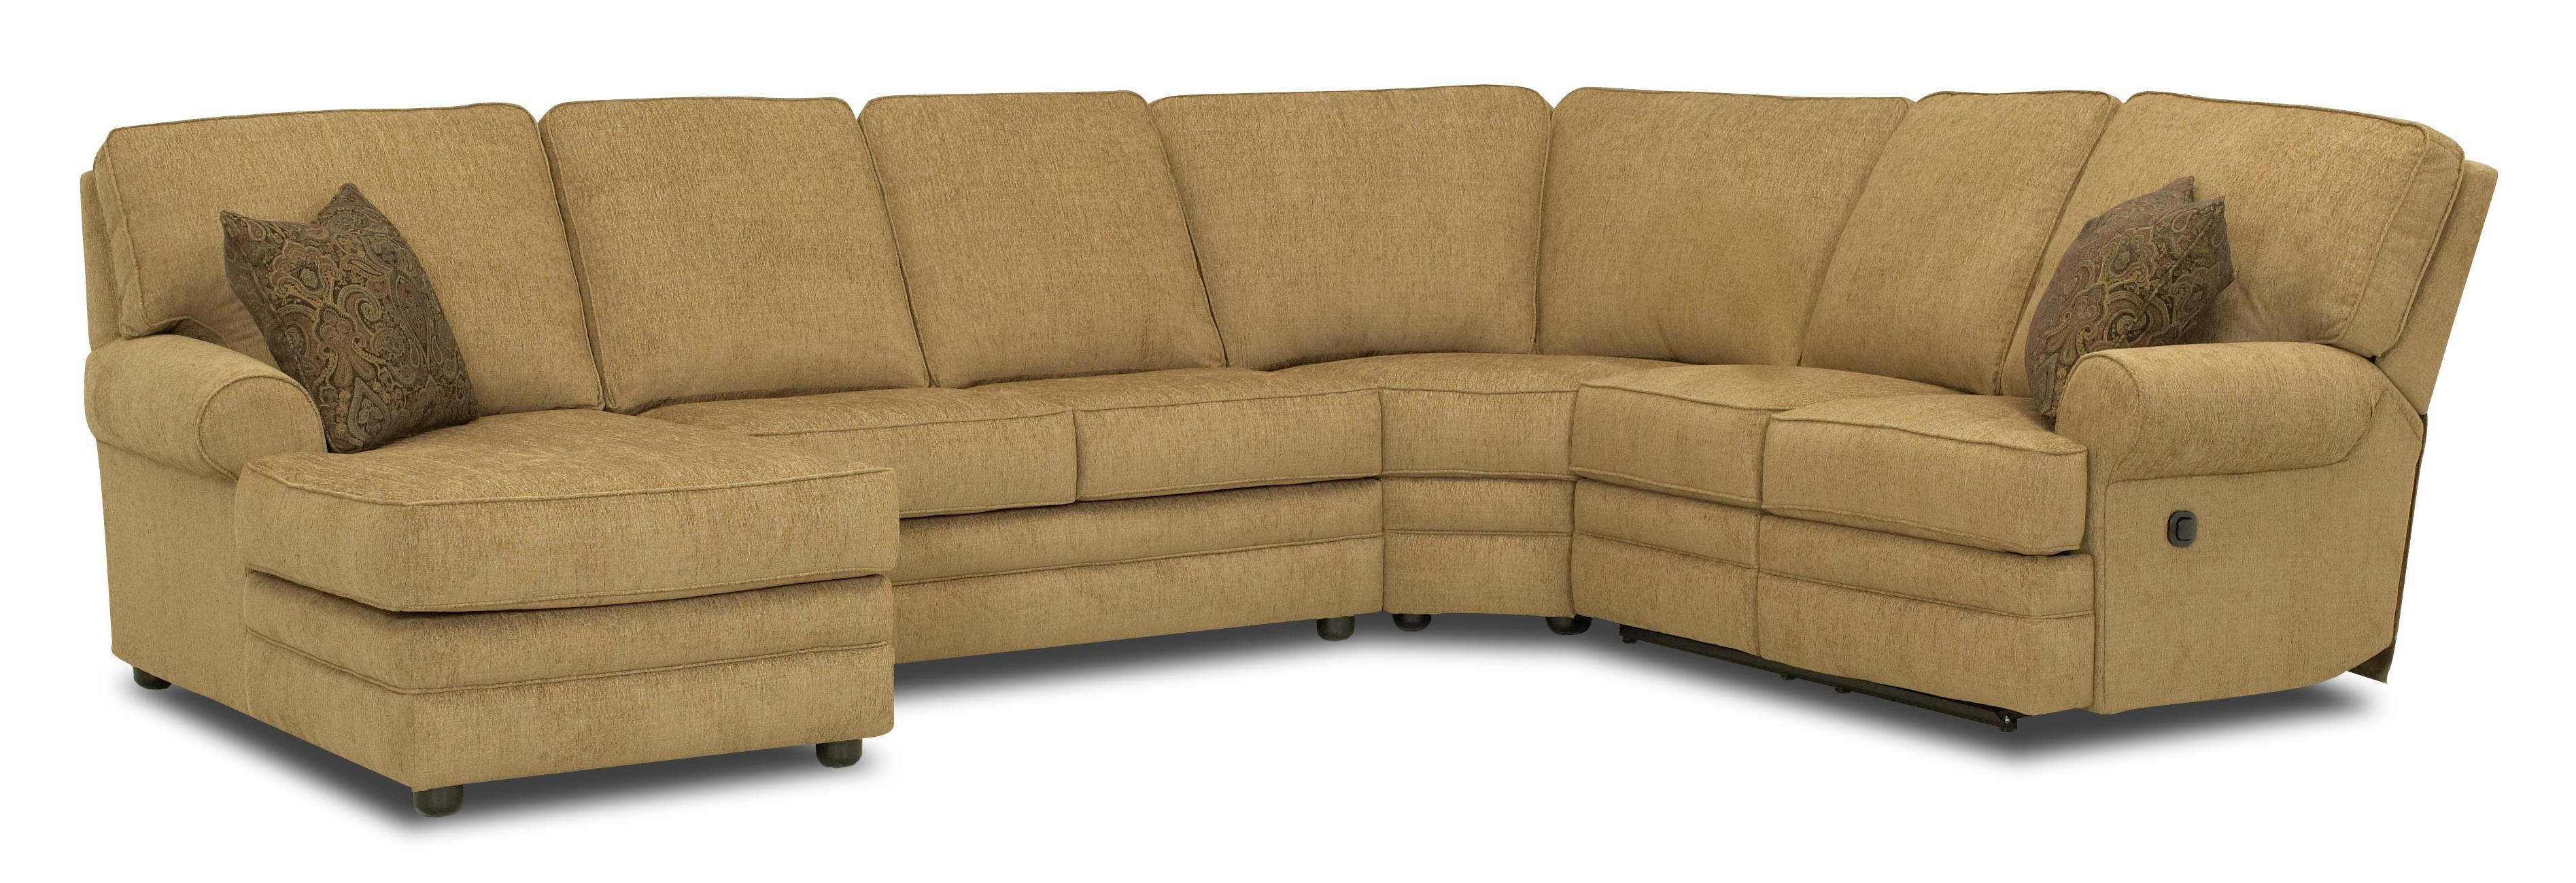 Reclining sectional with left side chaise by klaussner for Sectional sofas gardiners